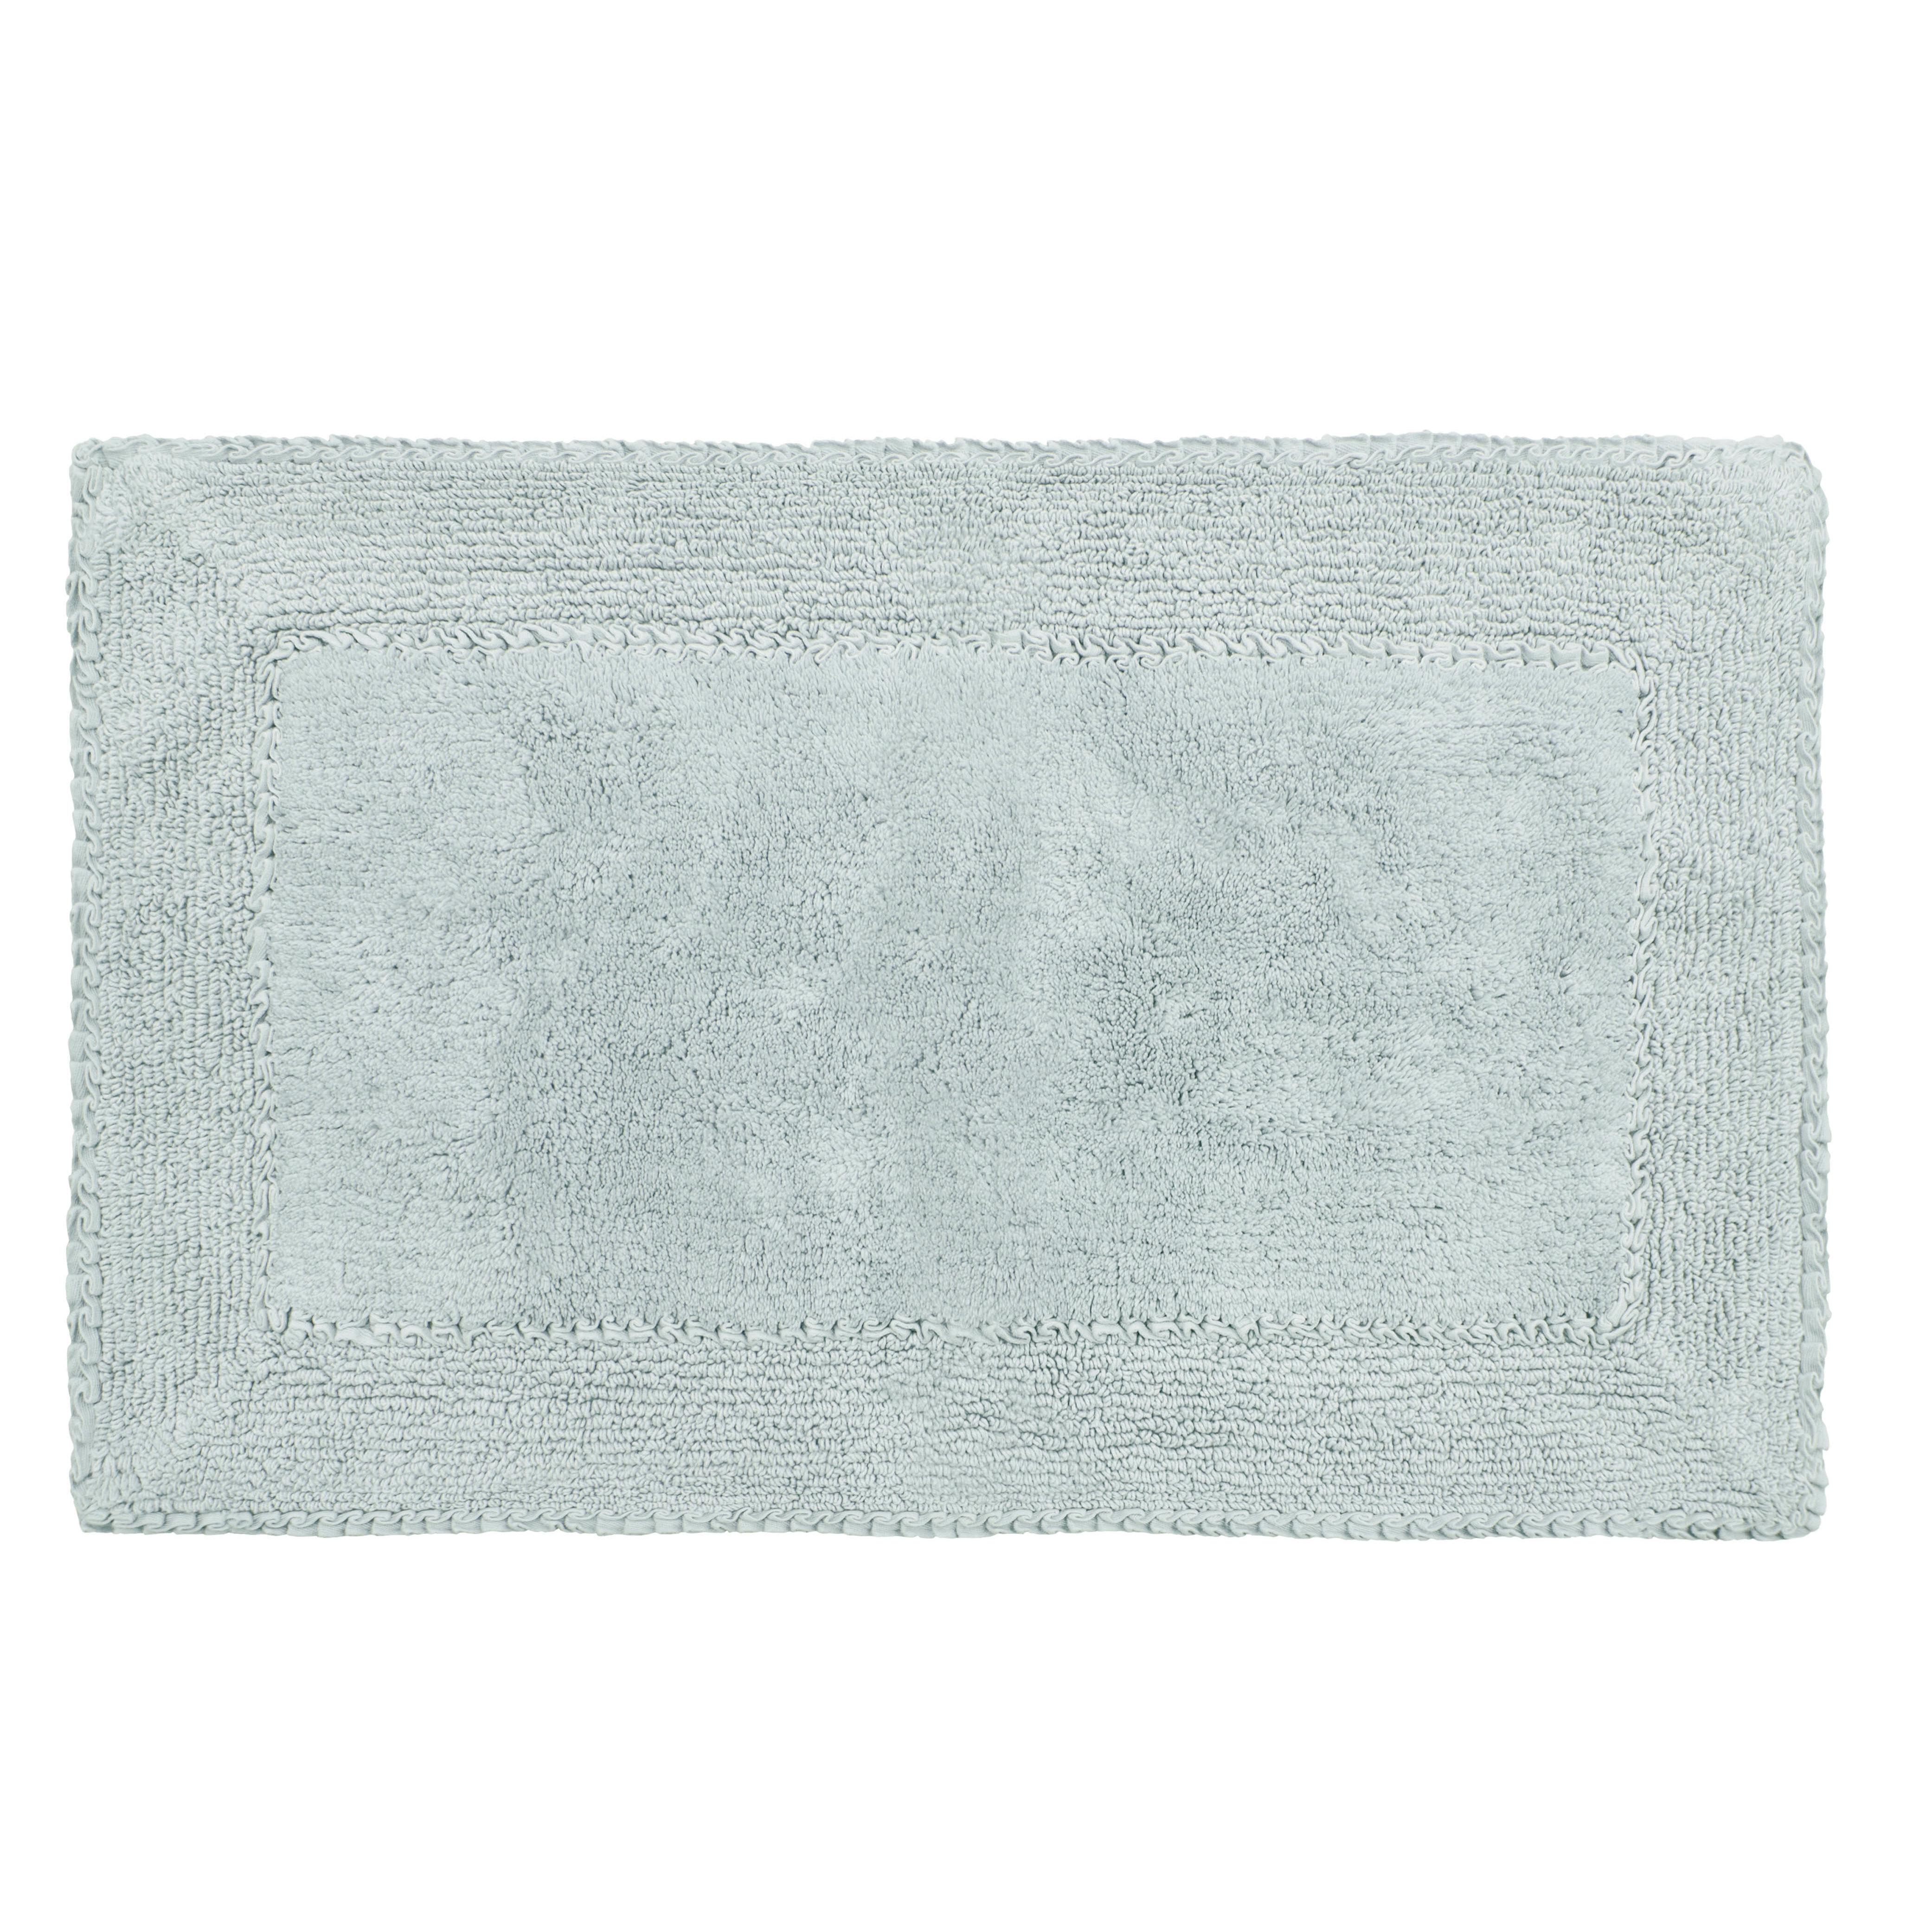 5ccdcace6a24 Ruffle Cotton Bath Rug   Reviews